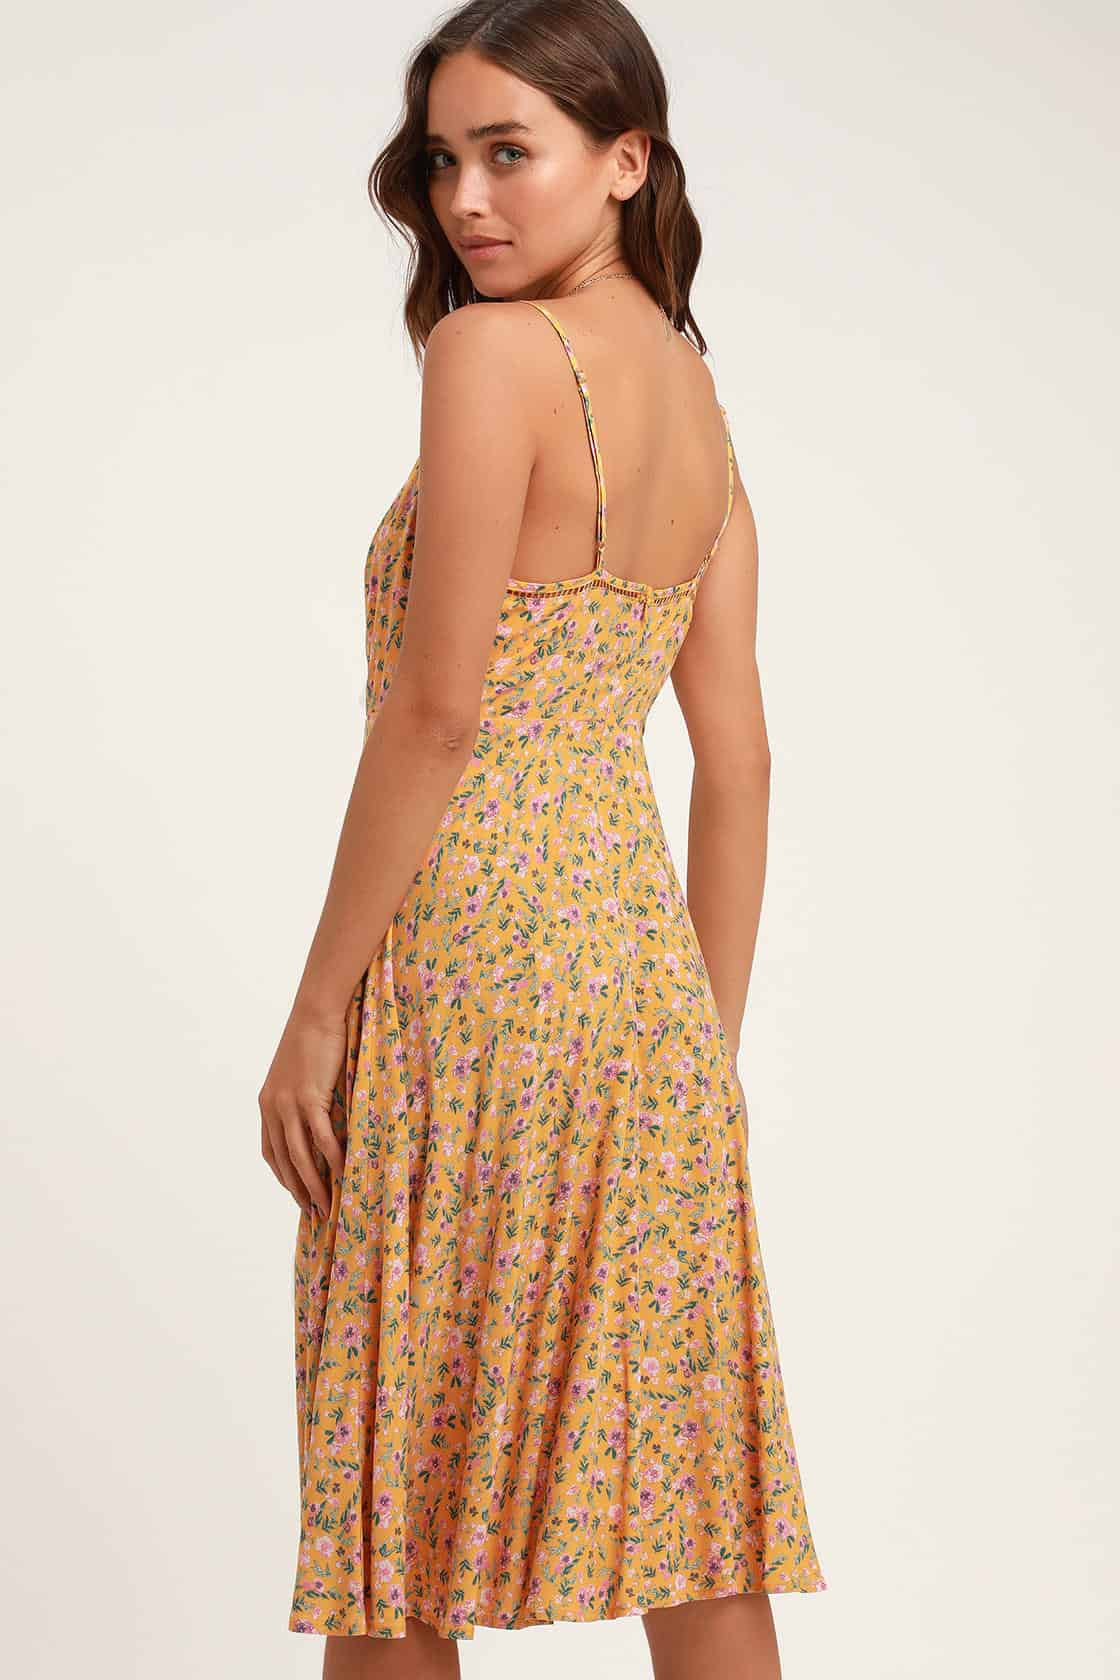 Summer Honeymoon Outfits for Her Yellow Floral Print Midi Dress 2